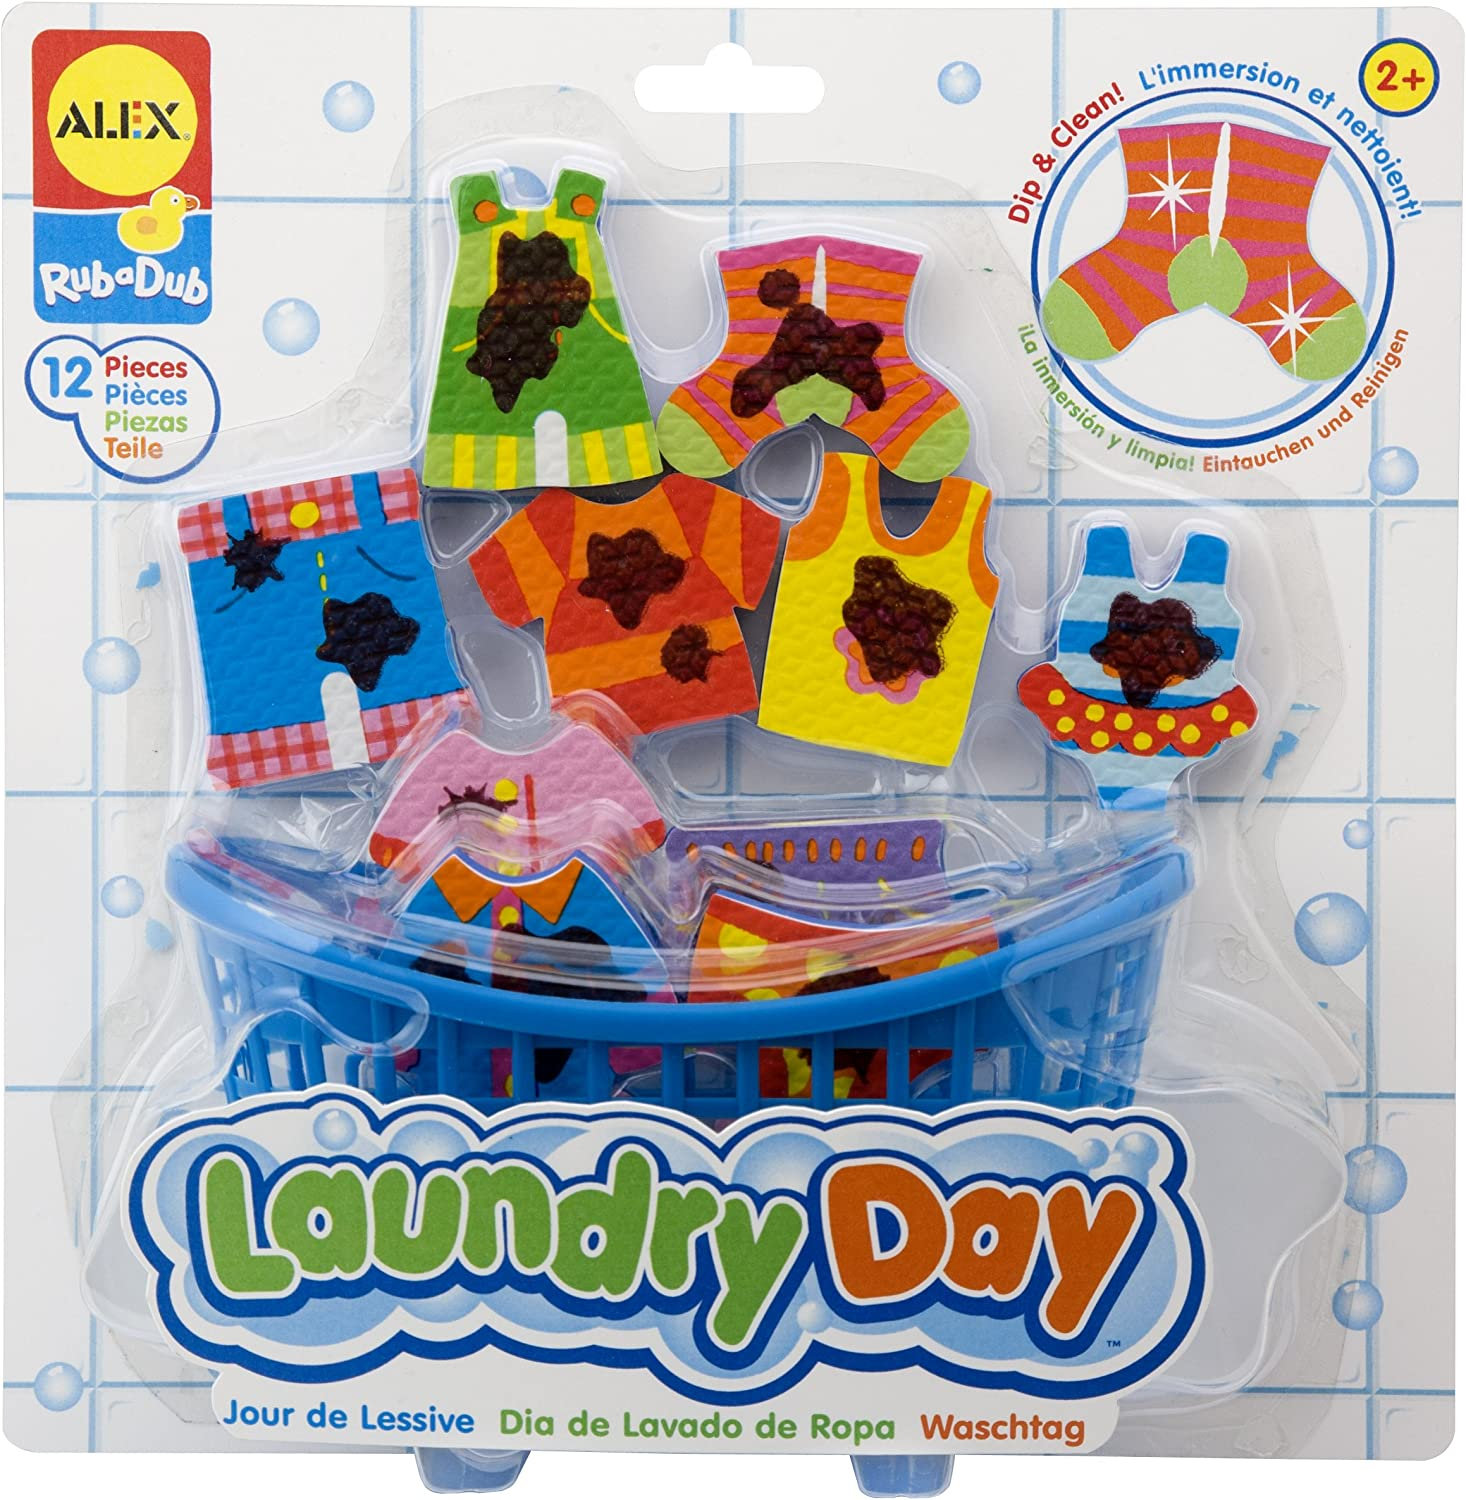 ALEX Toys Choice Rub 67% OFF of fixed price a Laundry Dub Day